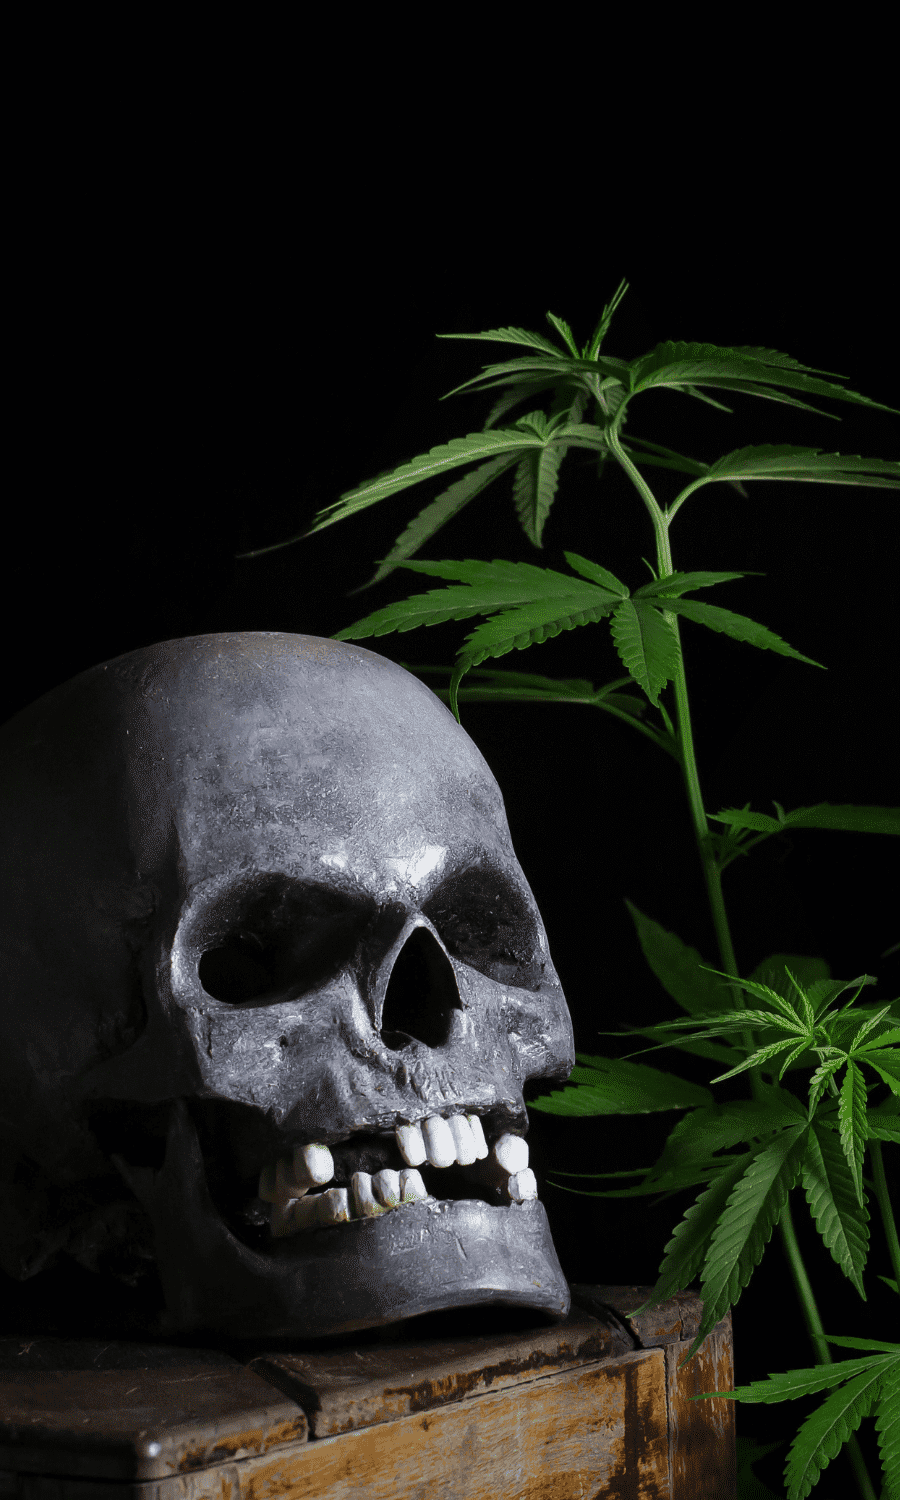 Skull with cannabis plant